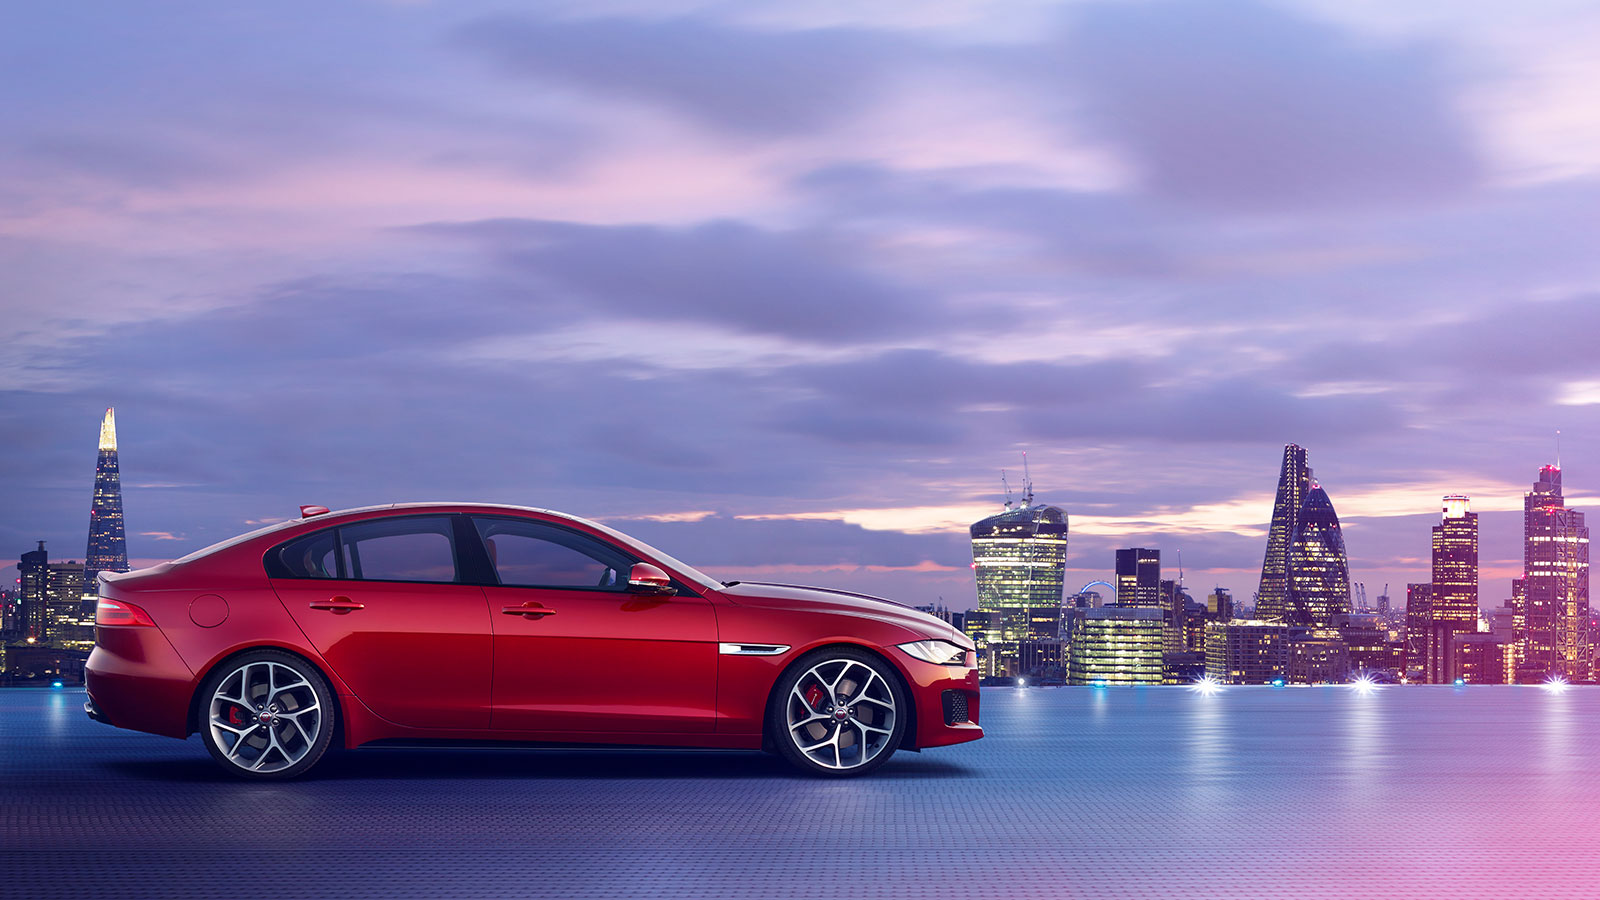 Night view of Jaguar XE, with London city skyline.